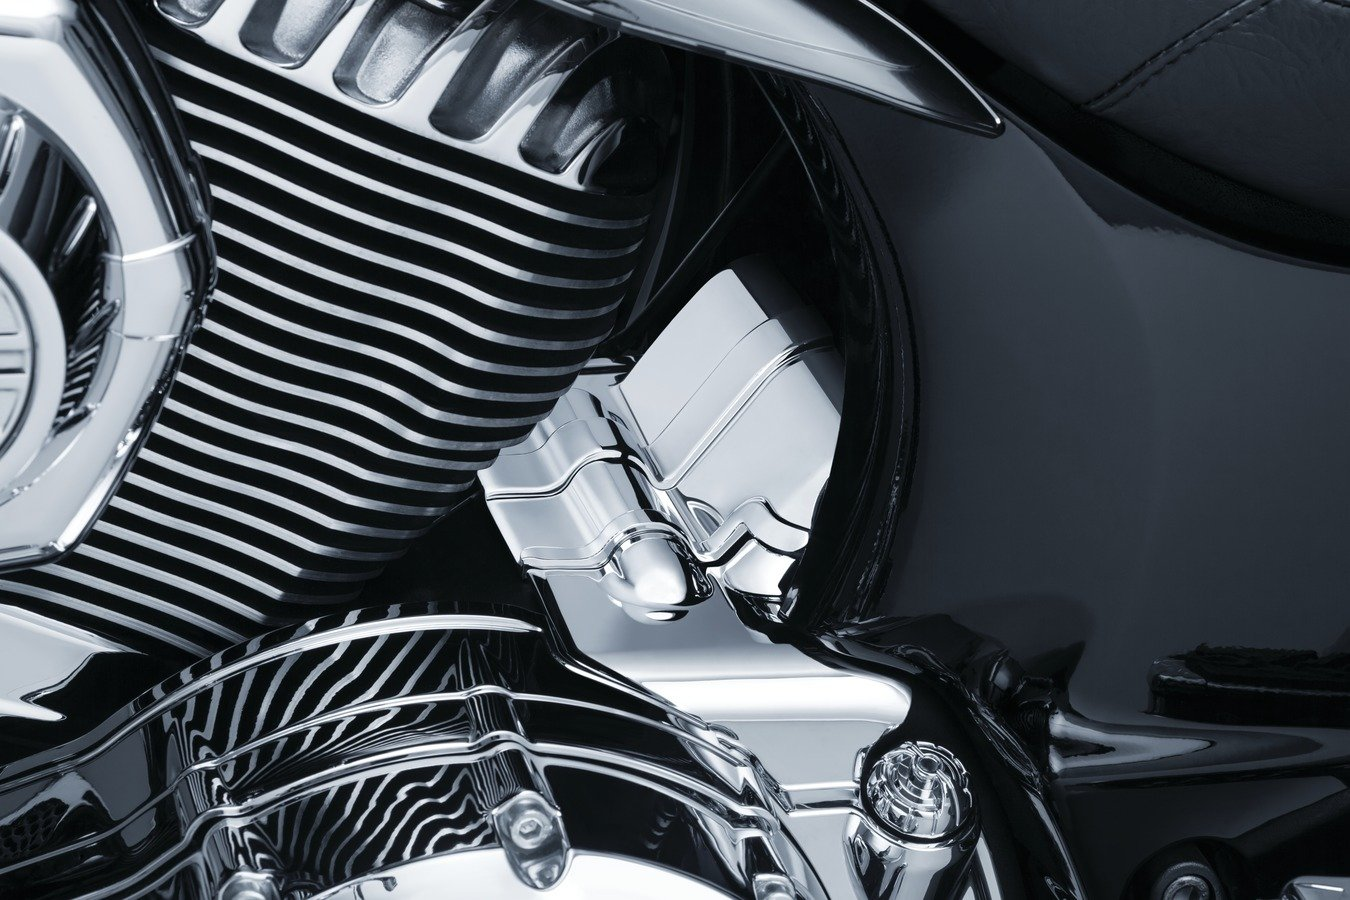 Kuryakyn Chrome Transmission Cover for Indian 2014-2018/ Chief Classic,/ Chief Dark Horse,/ Chief Roadmaster,/ Chief Vintage,/ Chieftain and/ Springfield Models